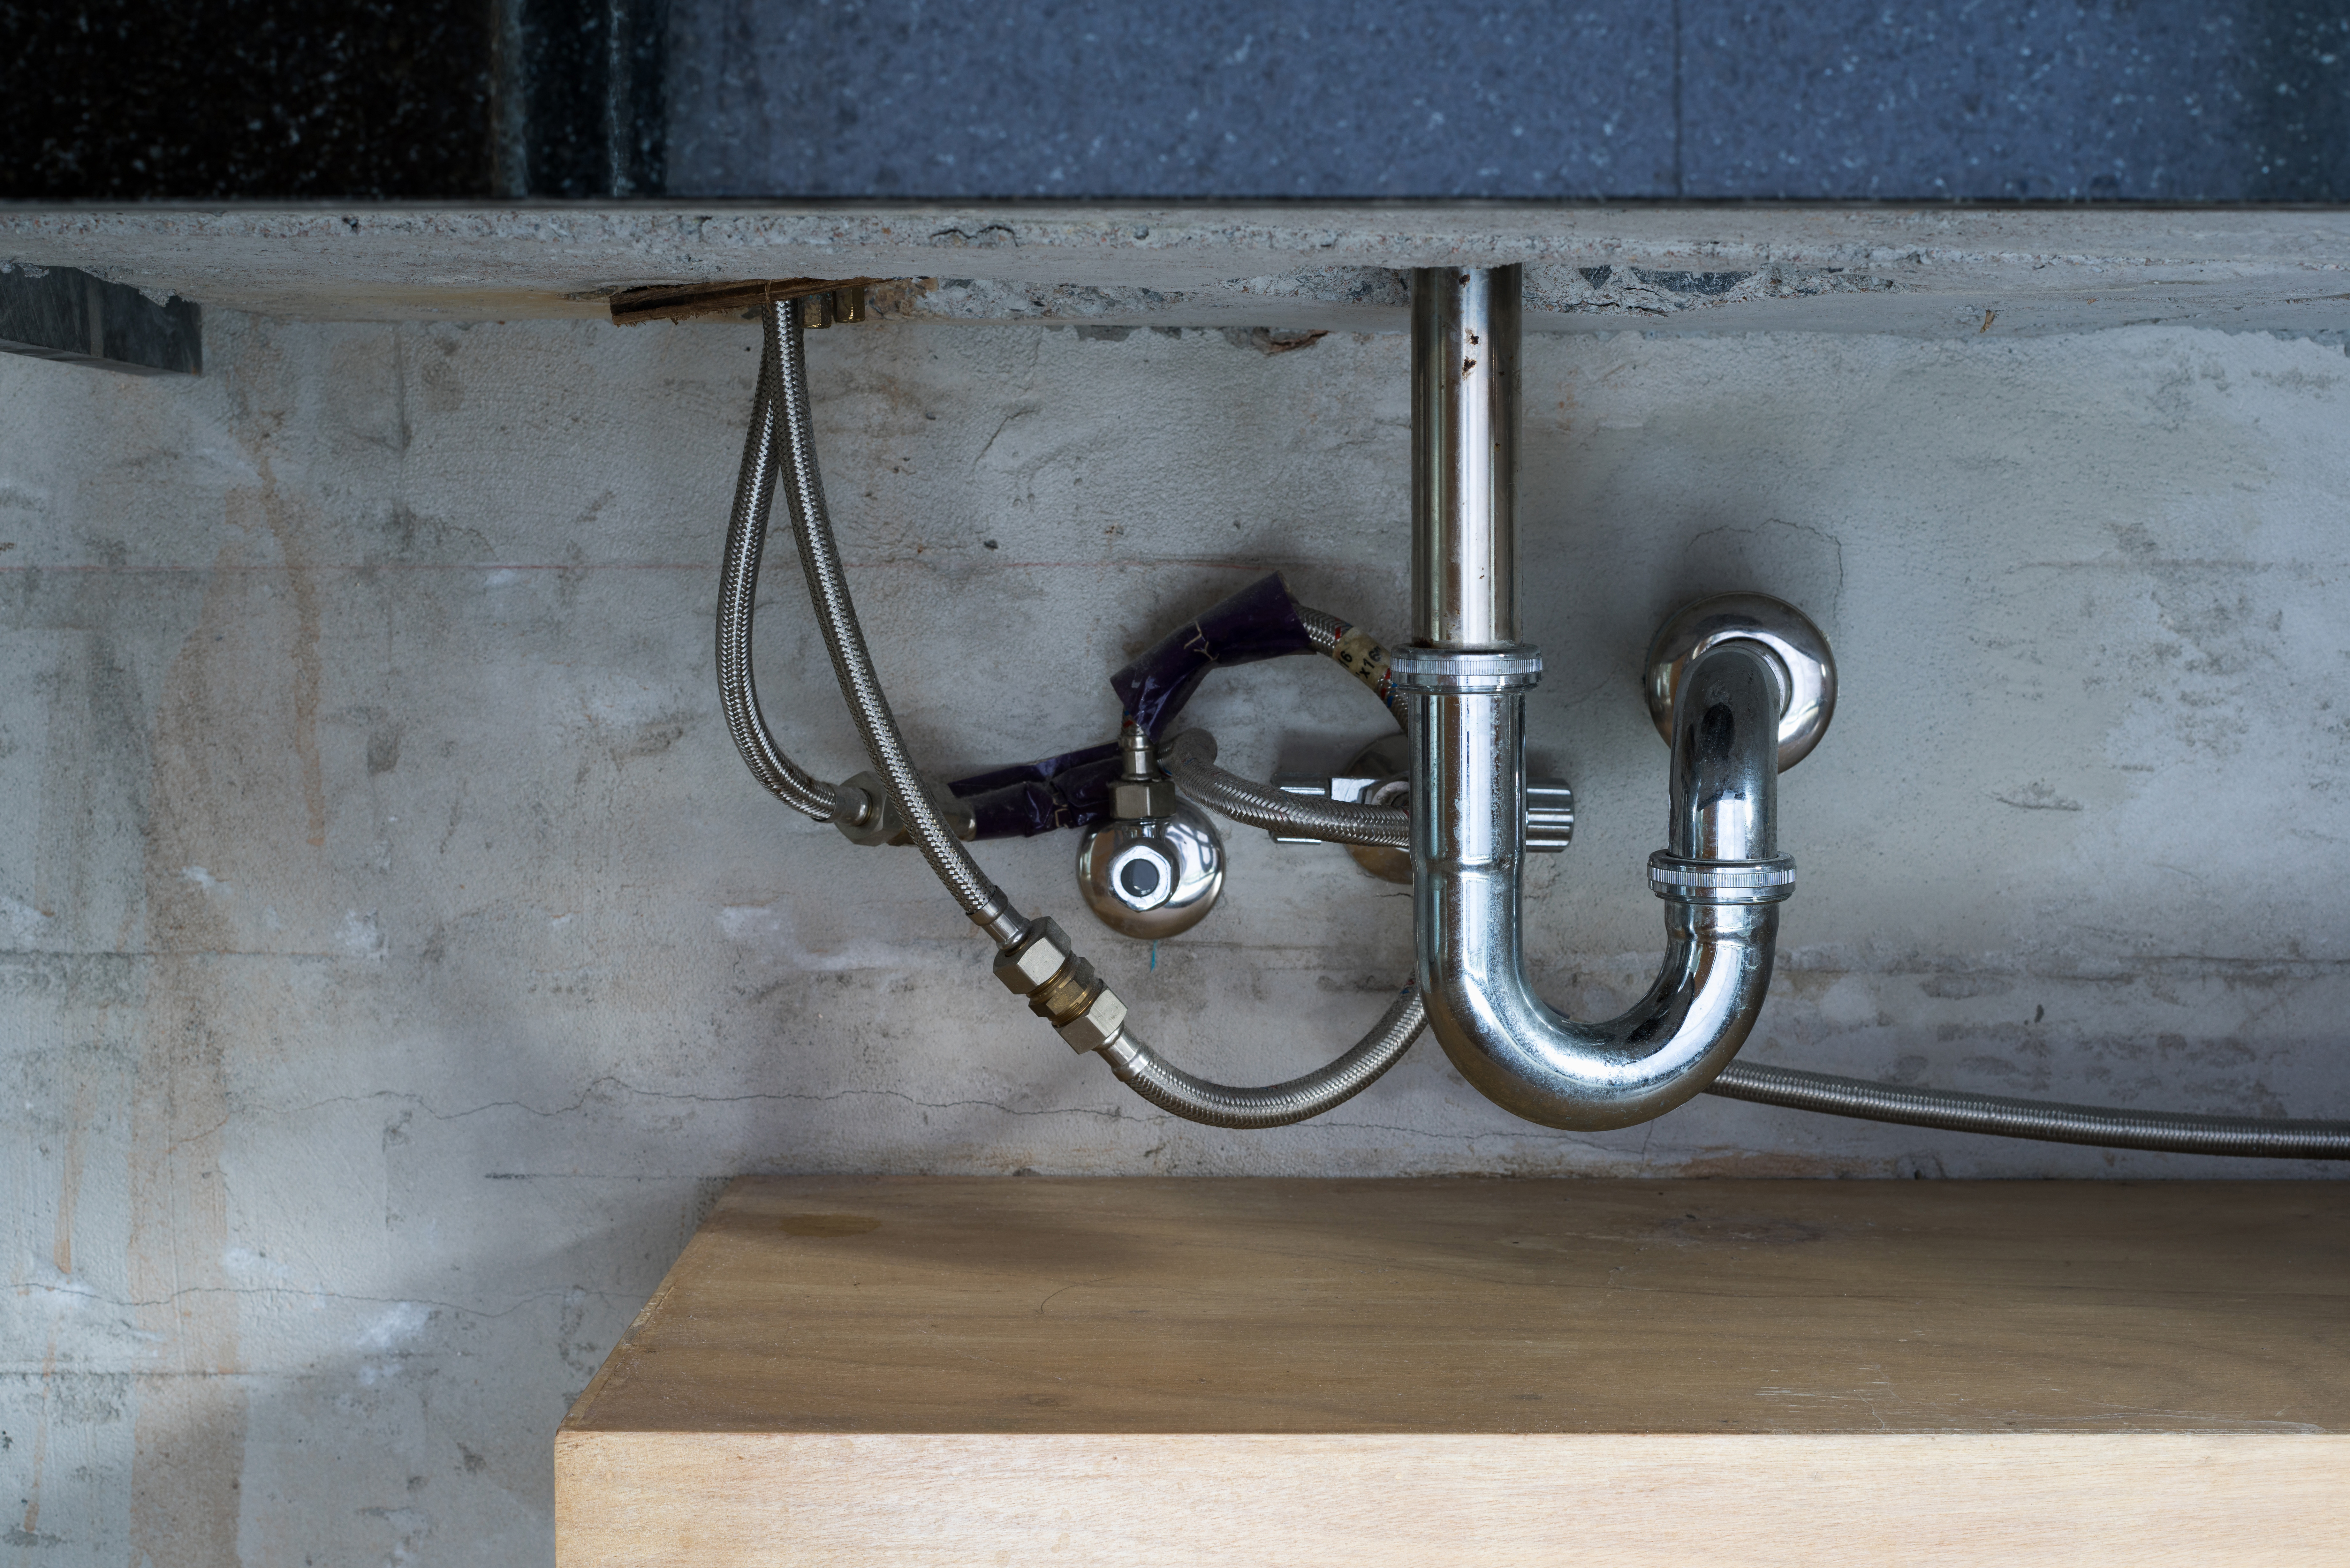 How to Remove the U-Pipe Under a Sink | Home Guides | SF Gate